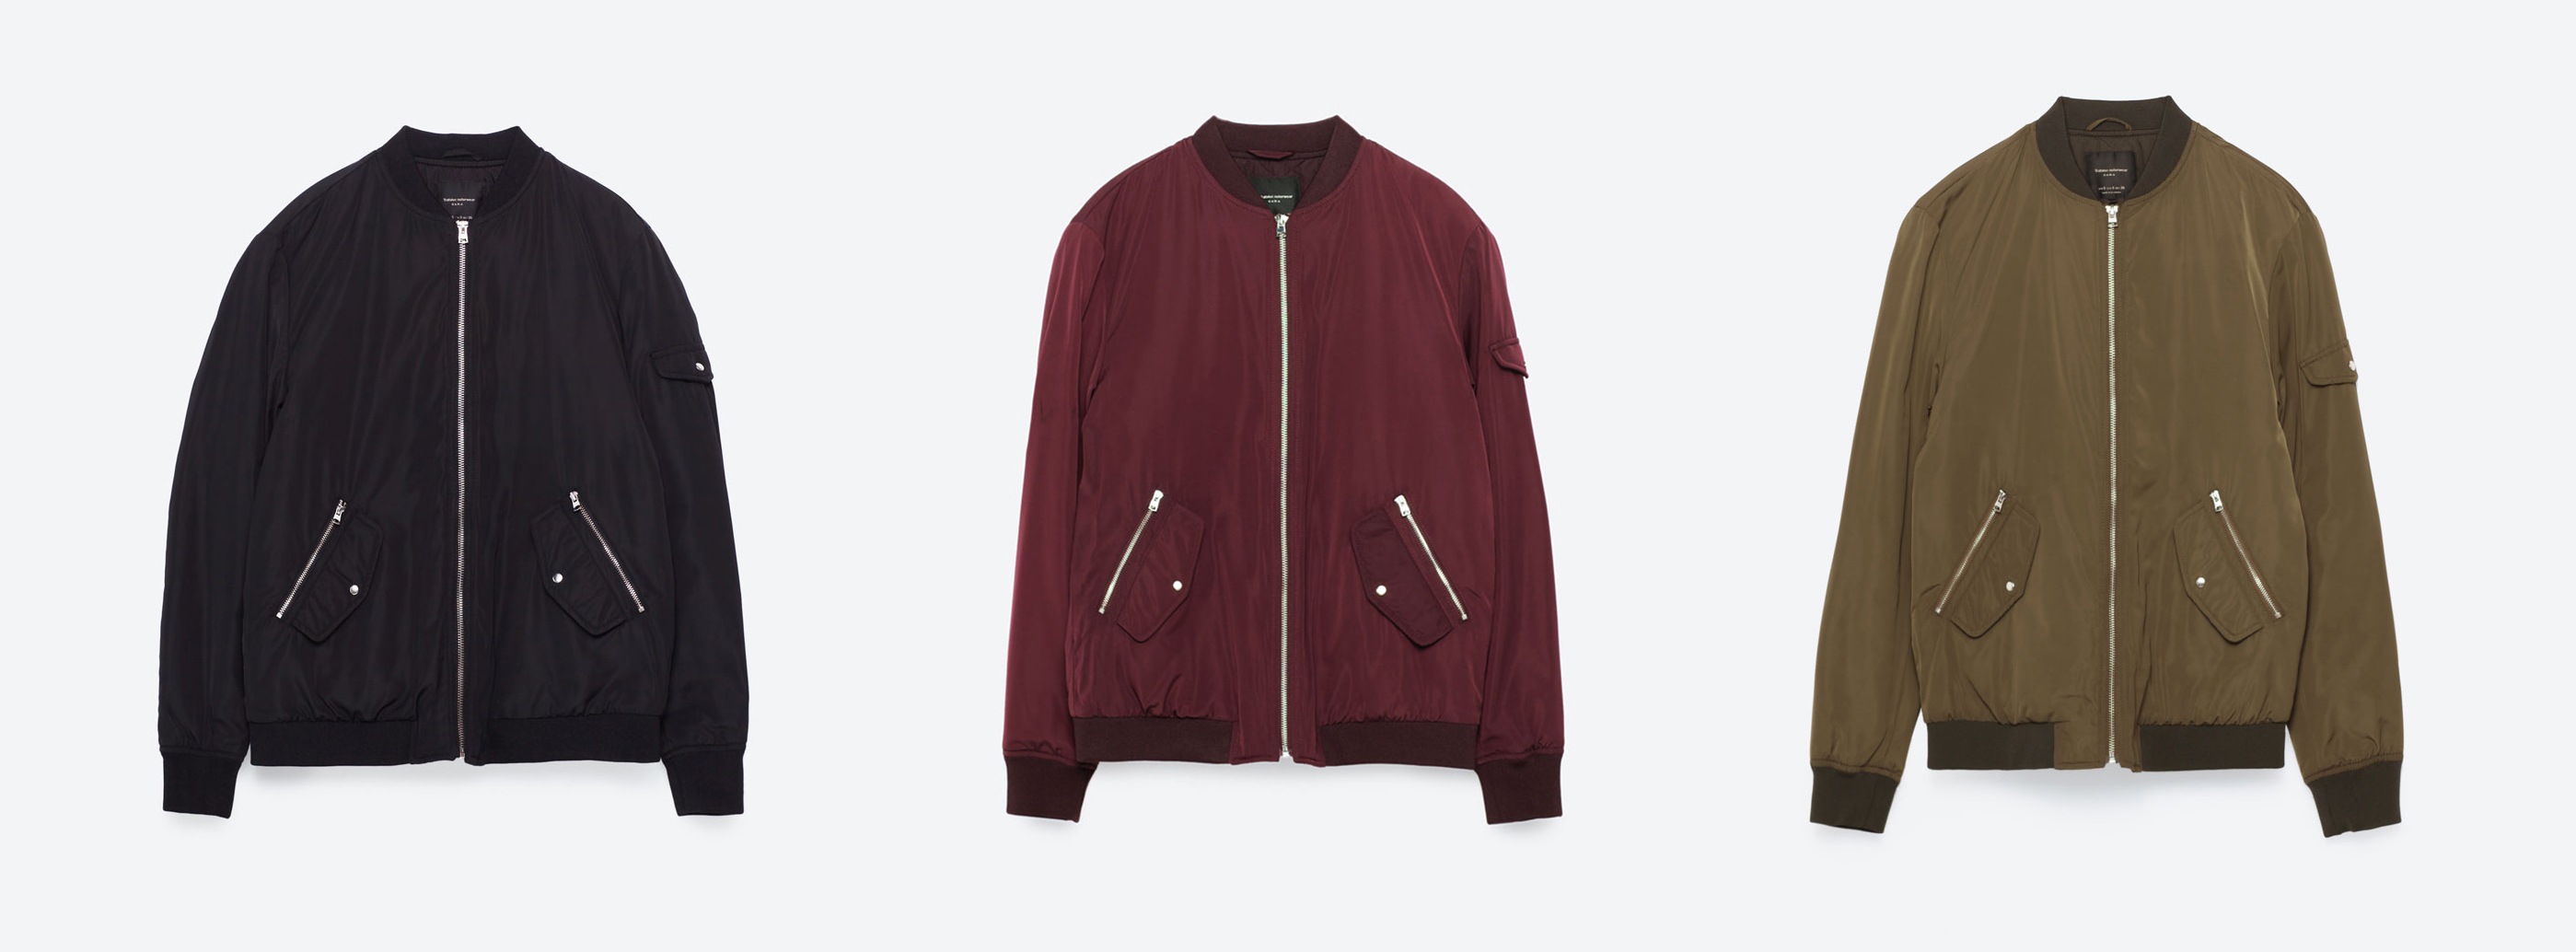 Zara Bomber - 3 colours.jpg